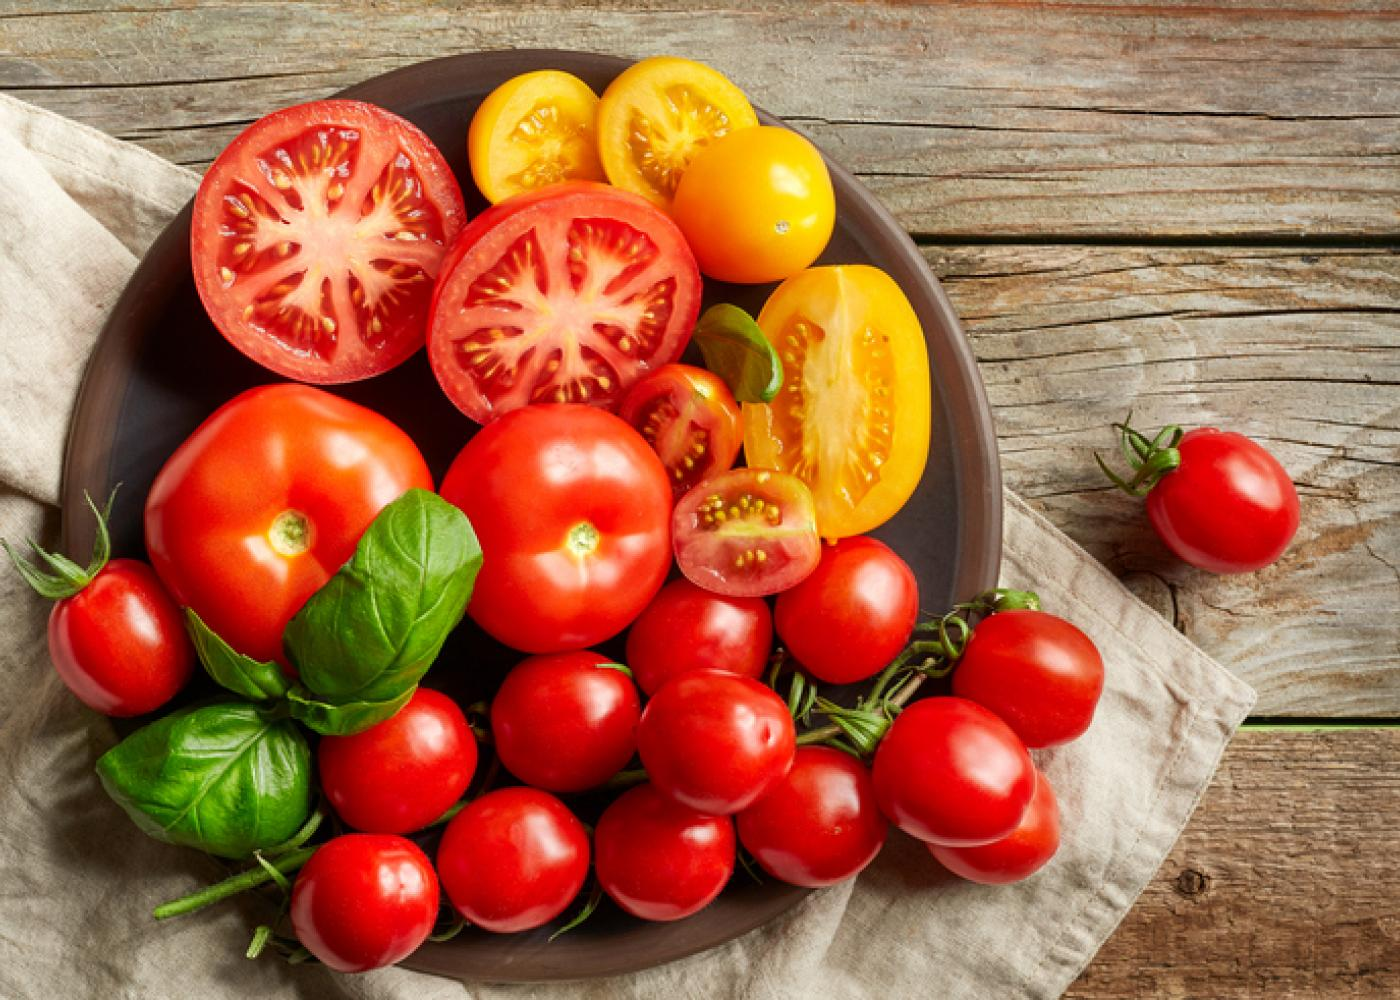 eat tomatoes for good skin